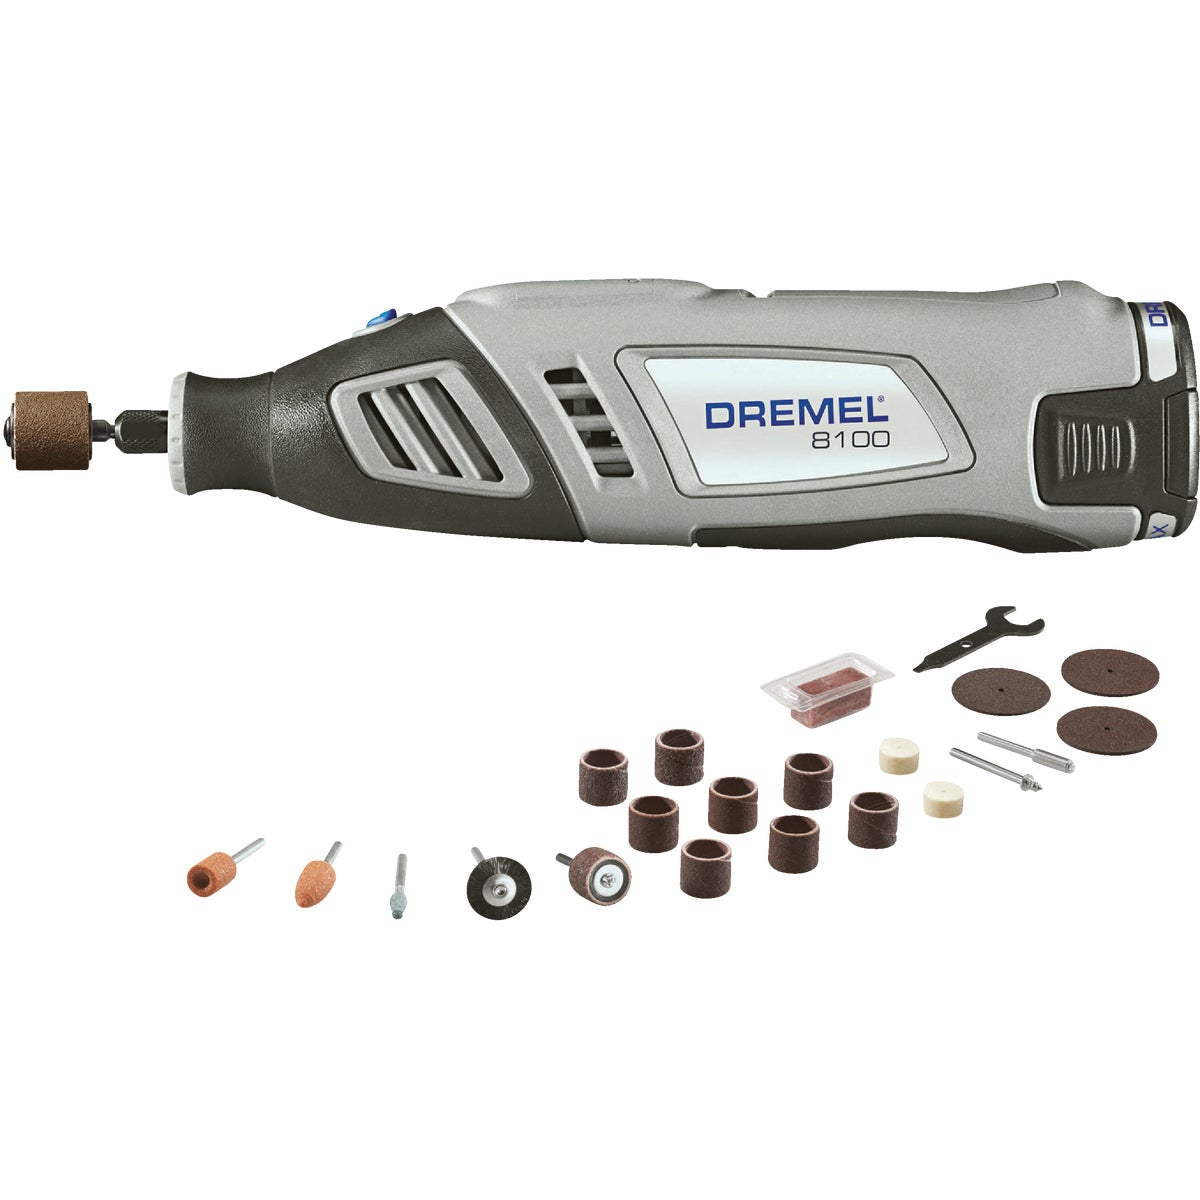 8V MAX ROTARY TOOL - 8100-N/21 by Dremel Mfg Co